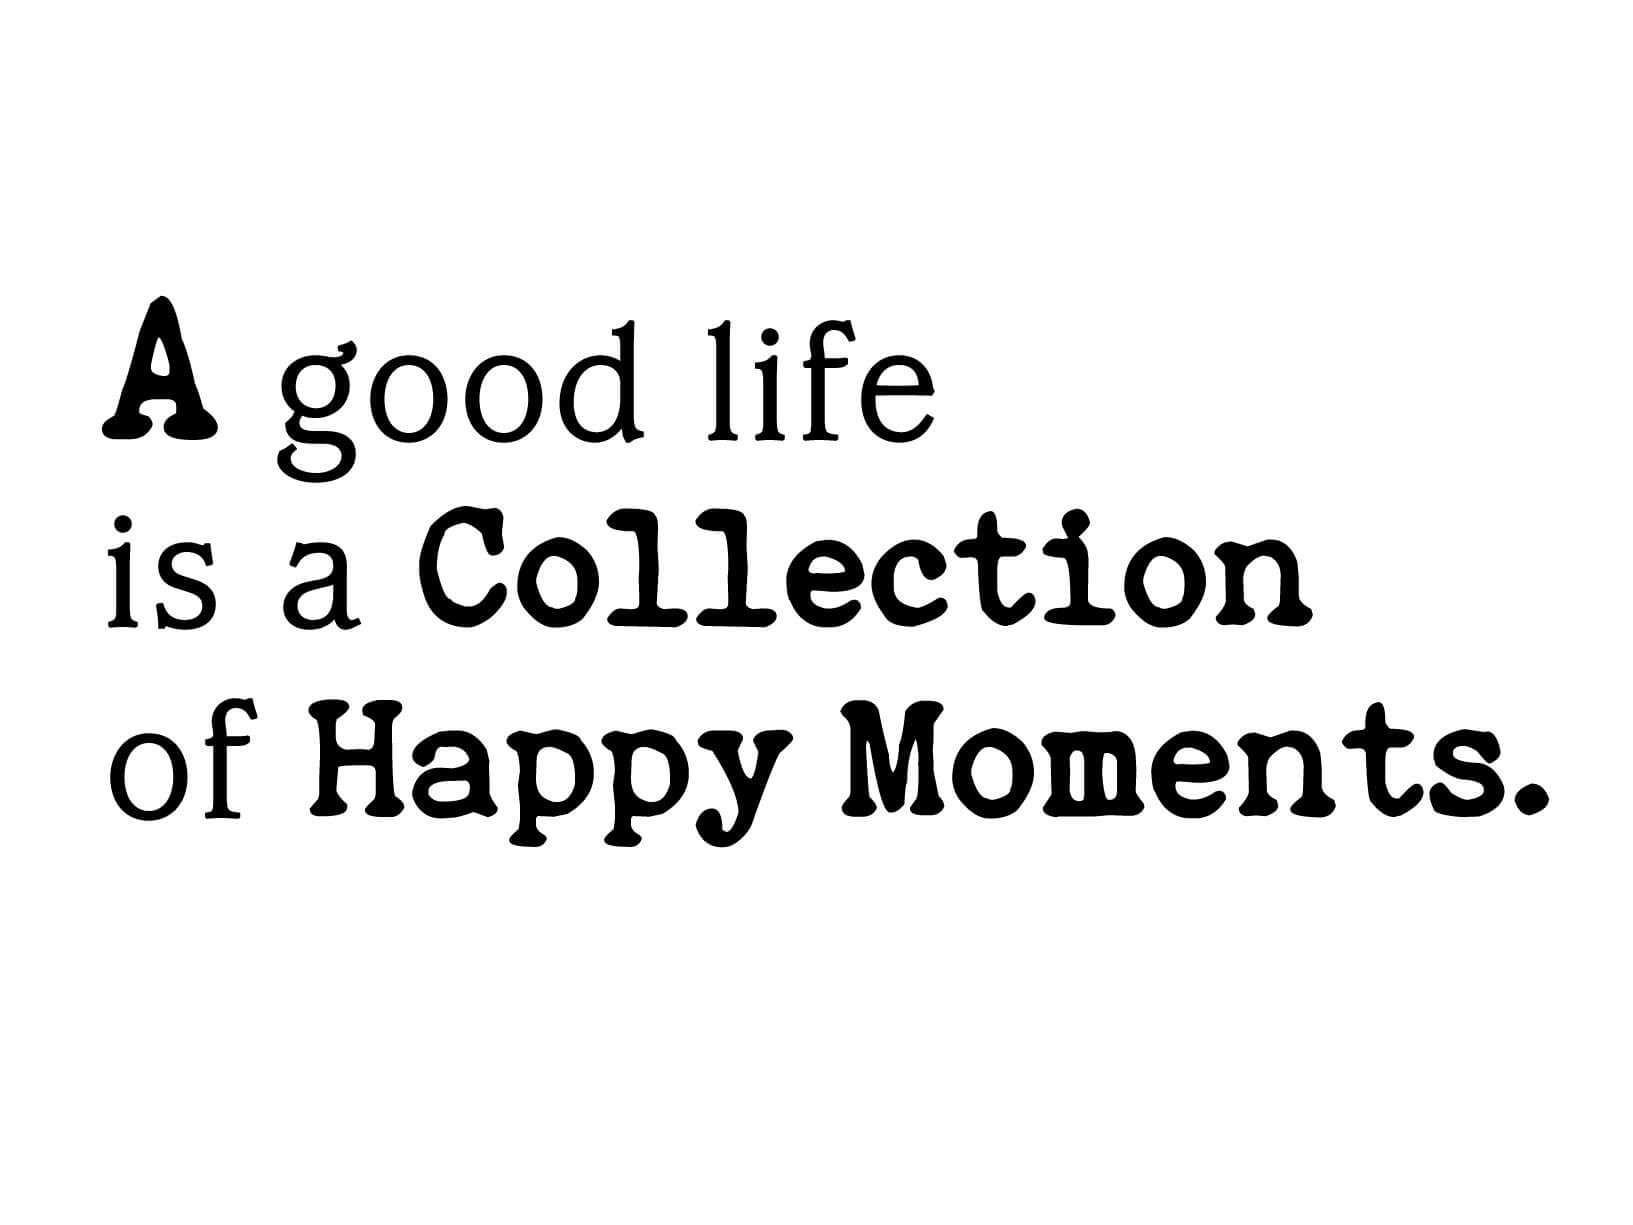 Muursticker A good life is a collection of happy moments